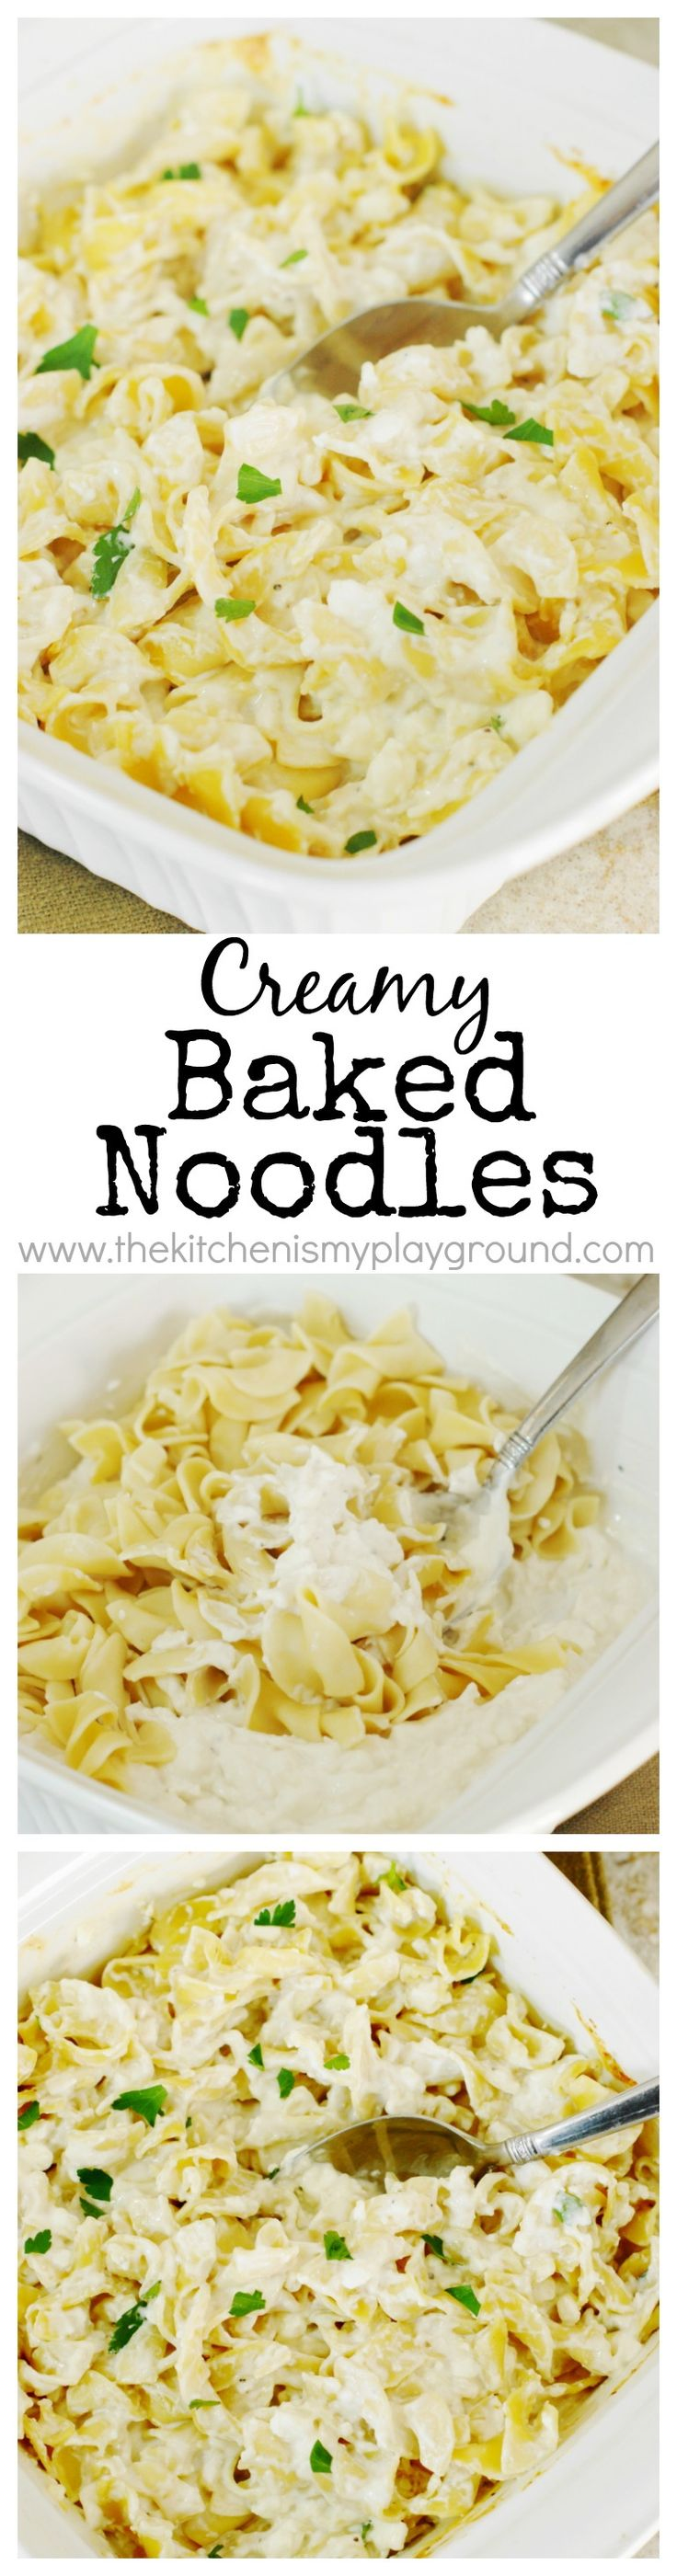 Creamy Baked Noodles ~ a super simple side dish that pairs beautifully as an easy side for just about anything!